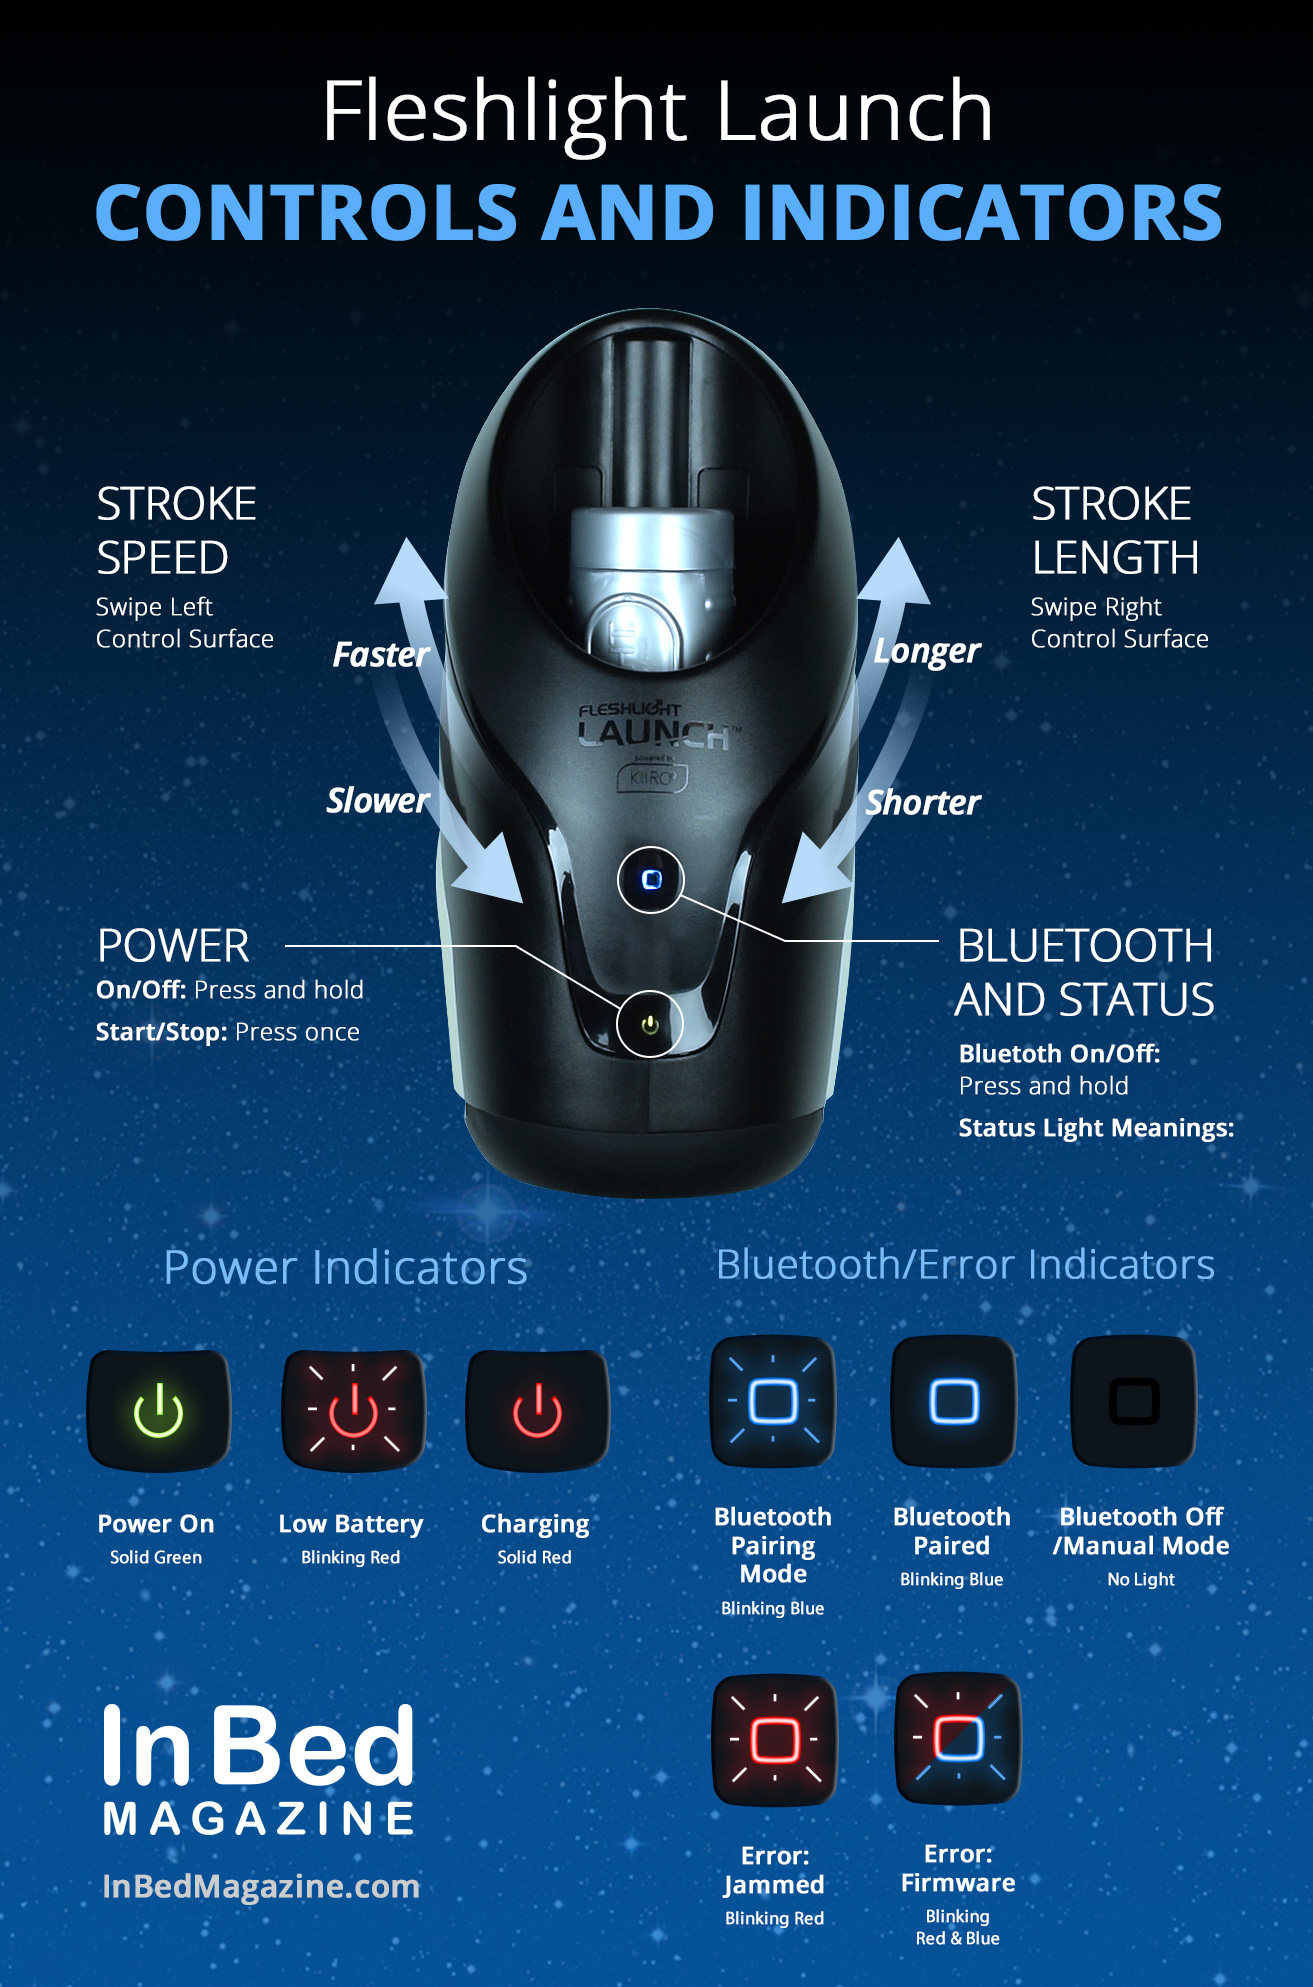 Fleshlight Launch Controls and Indicators Infographic